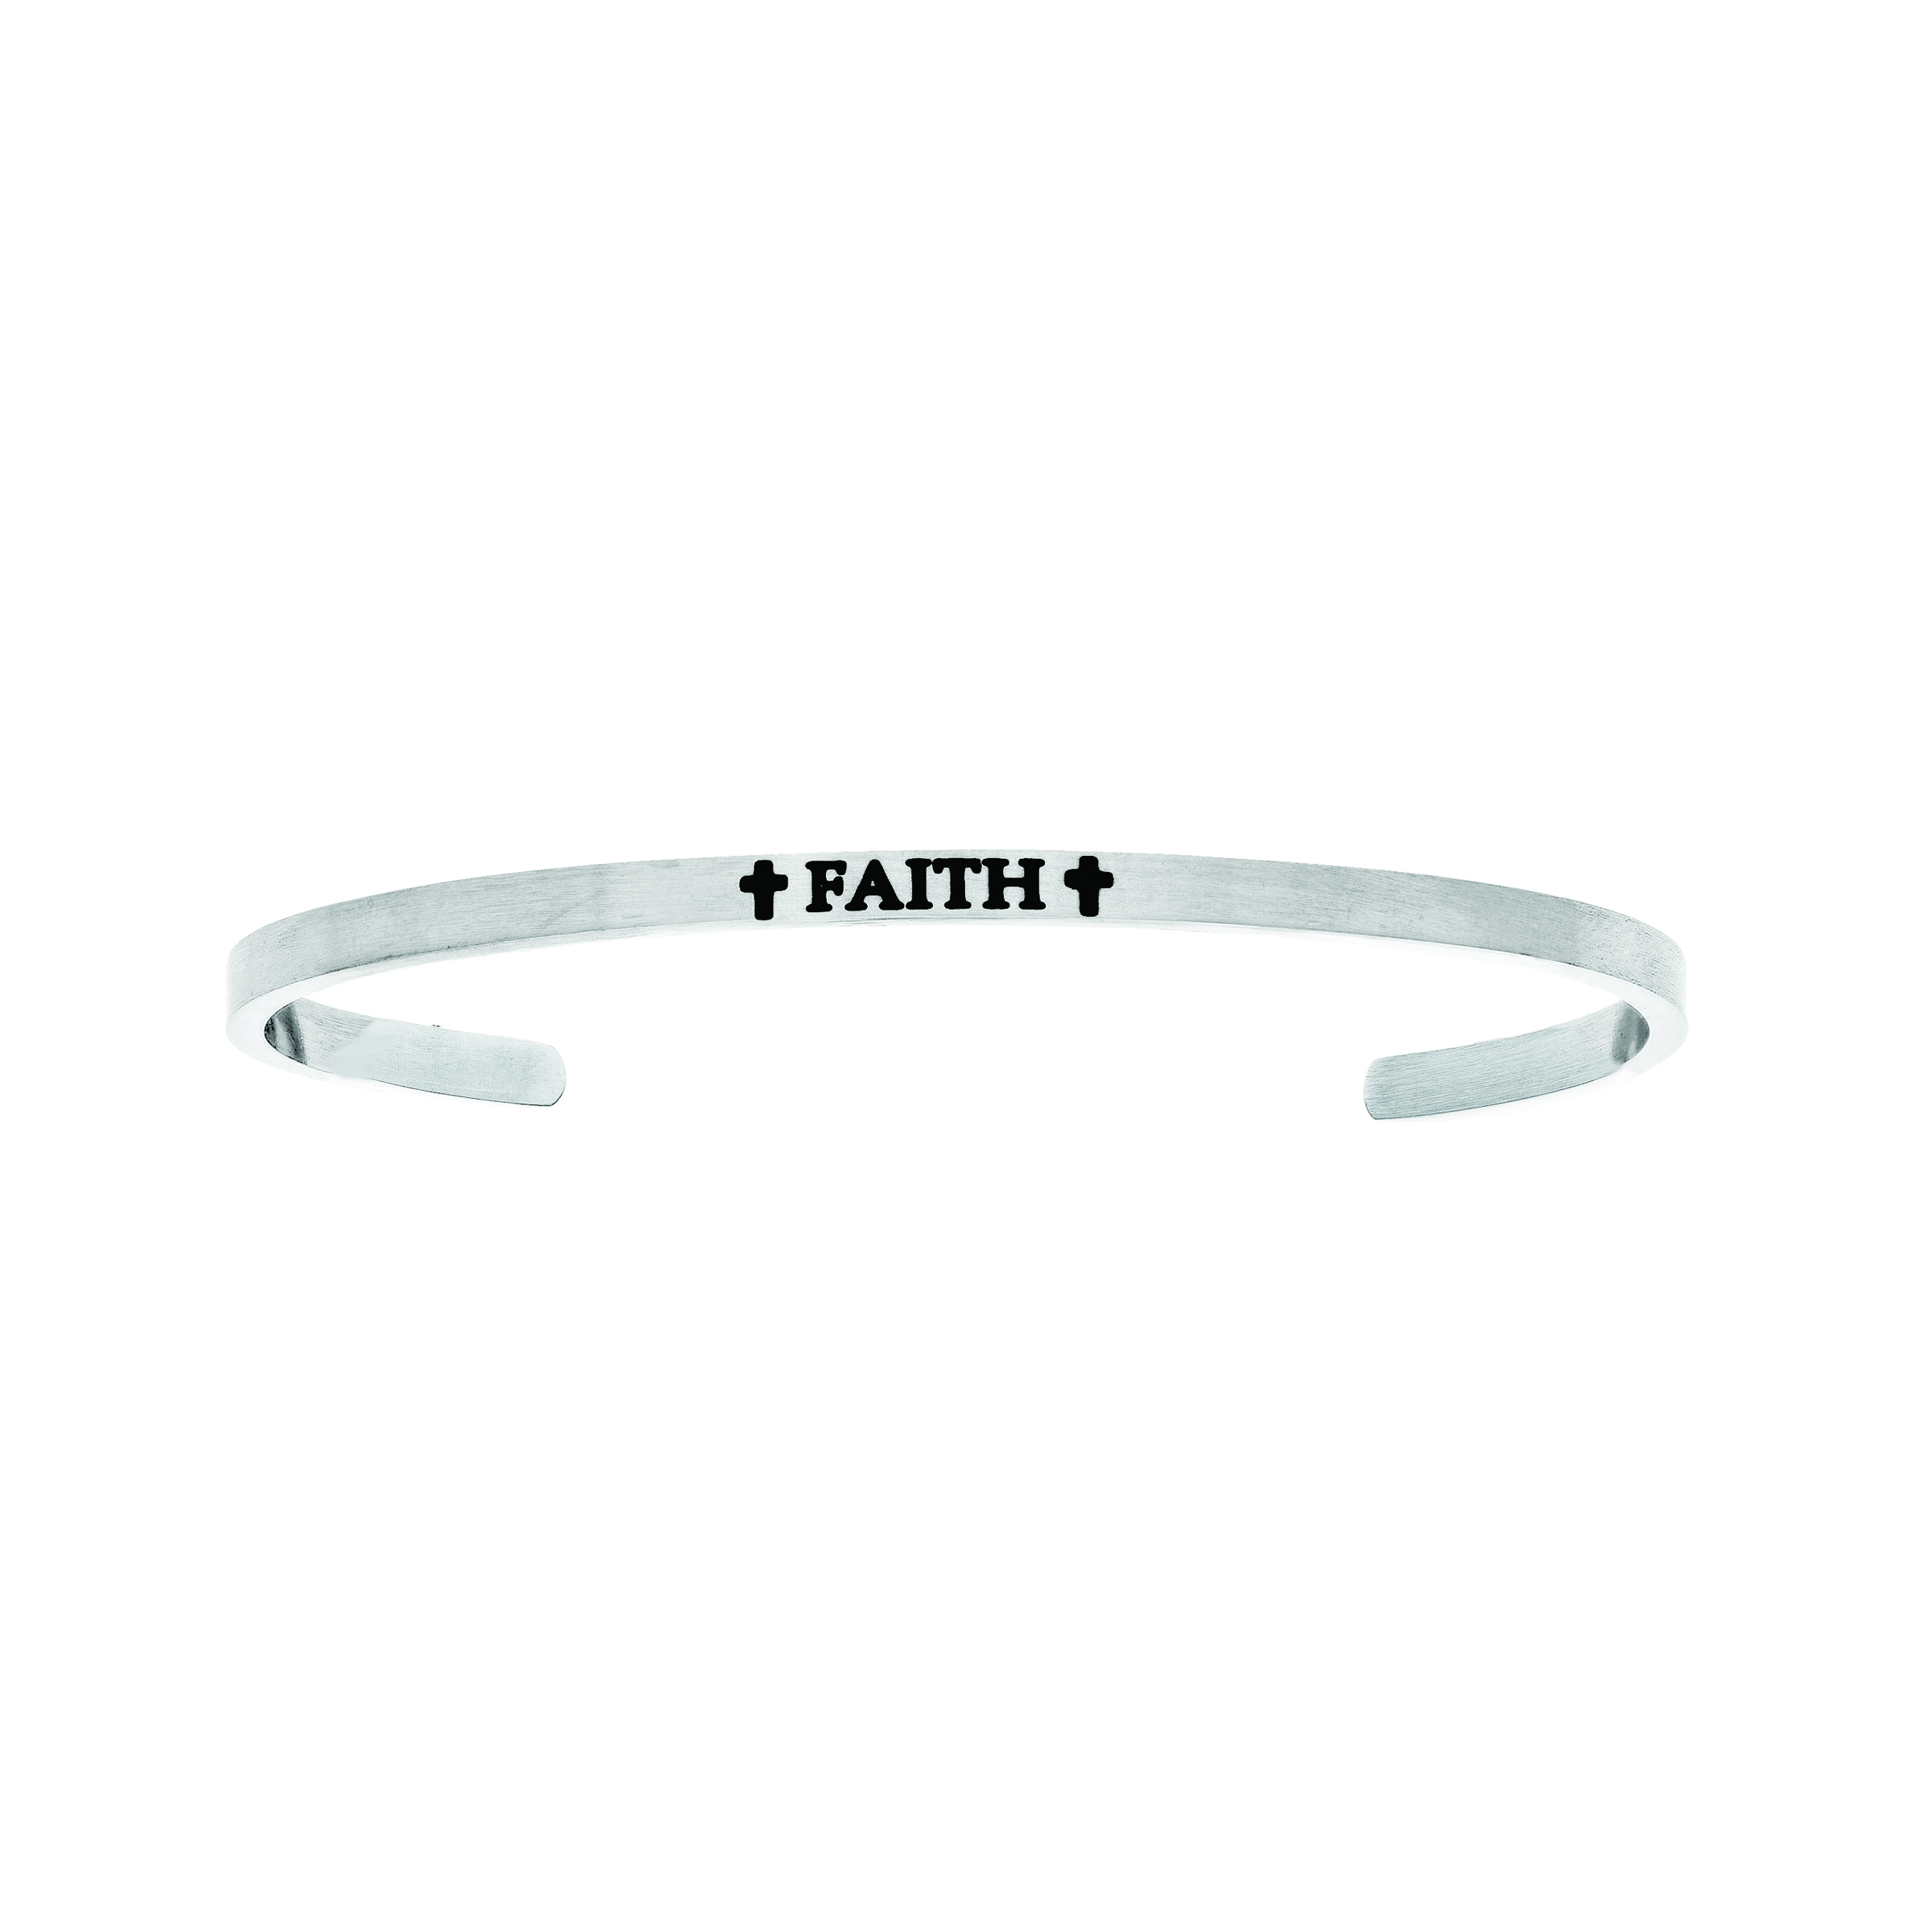 Intuitions Stainless Steel Faith With Cross Diamond Accent Cuff  Bangle Bracelet, 7  Each of these bracelets carries a personal message of inspiration, spirituality or just plain fun. Meant to be worn alone or stacked together for a smart, contemporary look, they're a great self-purchase or as a gift for family or friends. Intuitions are made of stainless steel and come in two styles standard cuff or friendship and fit practically any wrist. Intuitions Jewelry makes the difference in your daily life by designing and creating bracelets and bangles with motivational quotes to inspire you and your loved ones. Giving back $.25 of each bracelet to BABY2BABY